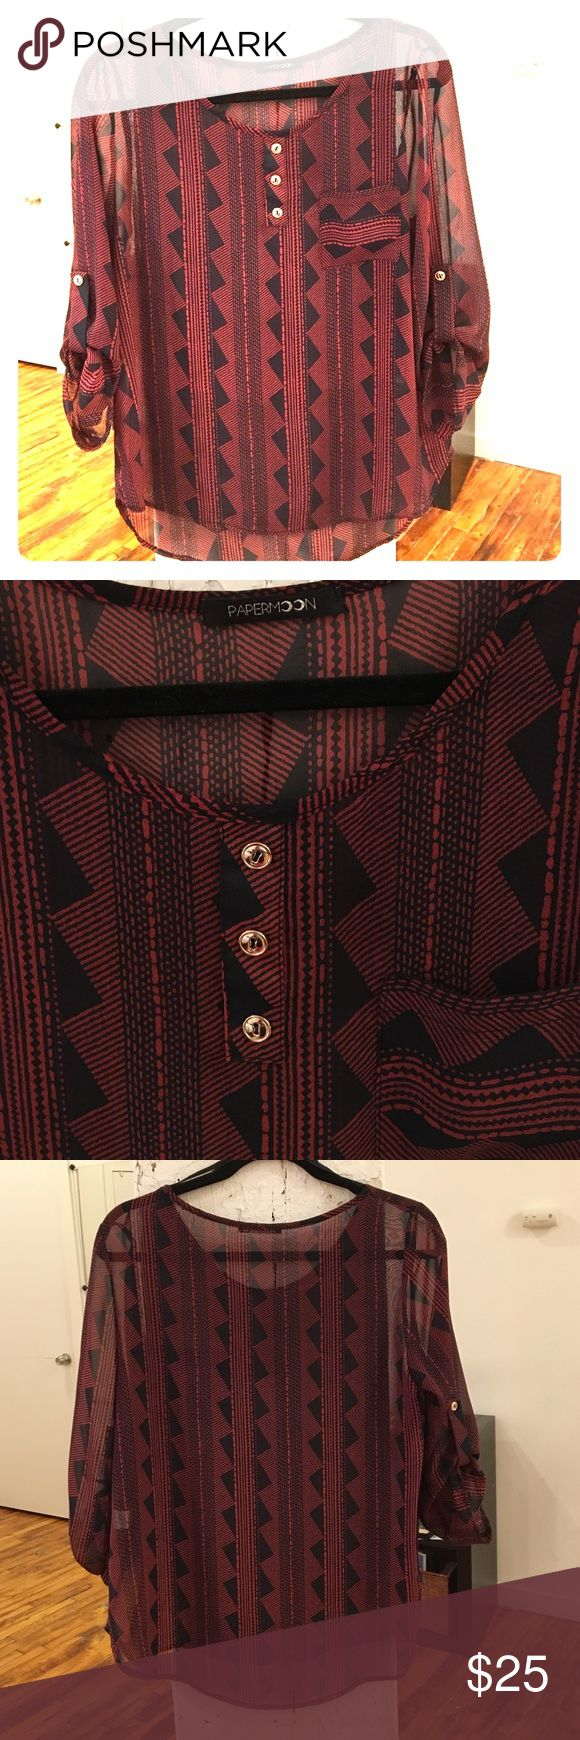 Stitch Fix Papermoon 3/4 Sleeve Aztec Top Sz M Stitch Fix Papermoon 3/4 Sleeve Aztec Top Sz Medium. Does require an undershirt as it is pretty sheer. Front three buttons do not come undone. Front pocket. Black and red Aztec print. Papermoon Tops